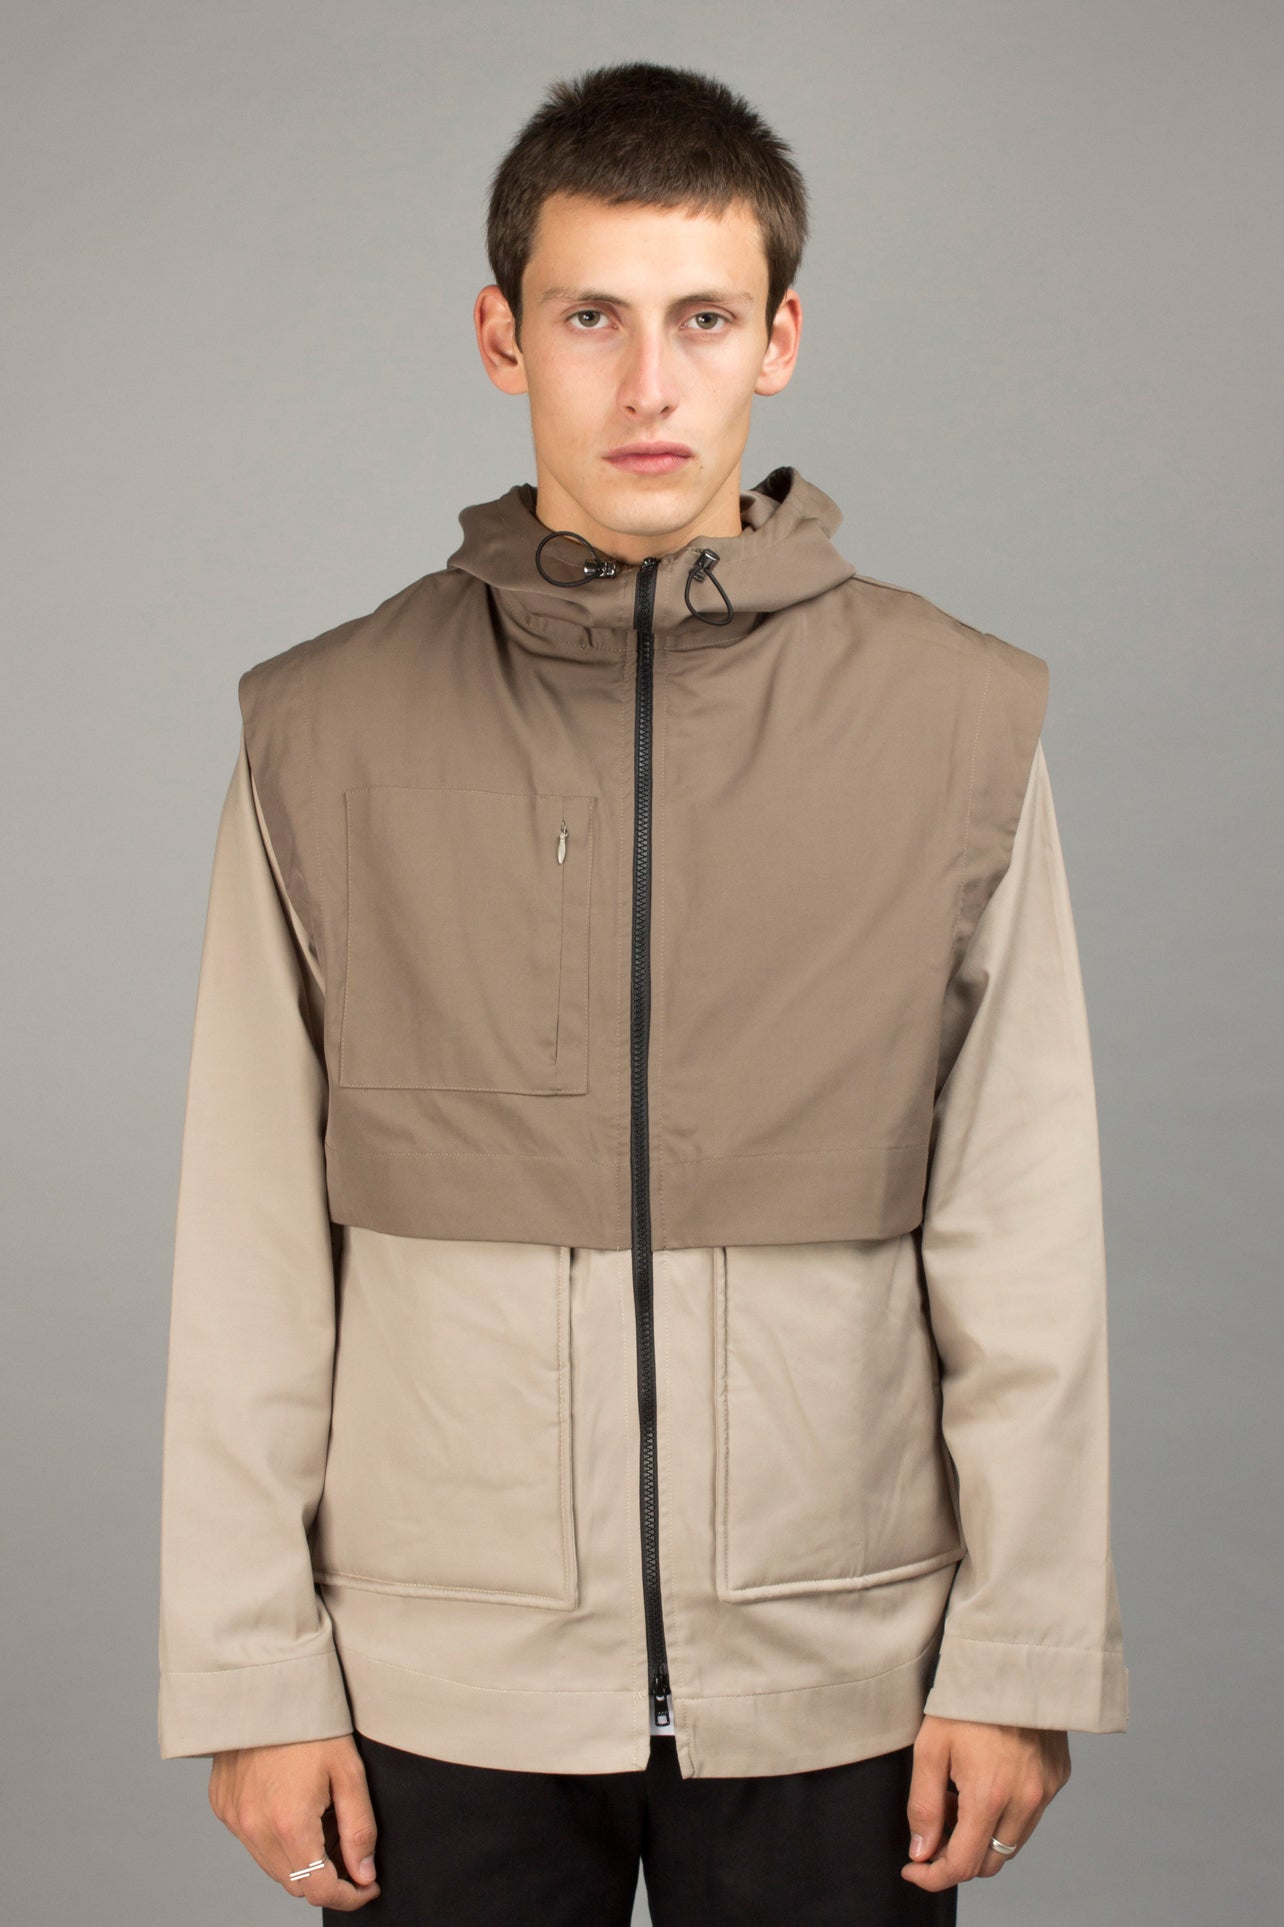 TWO-TONE WATERPROOF JACKET